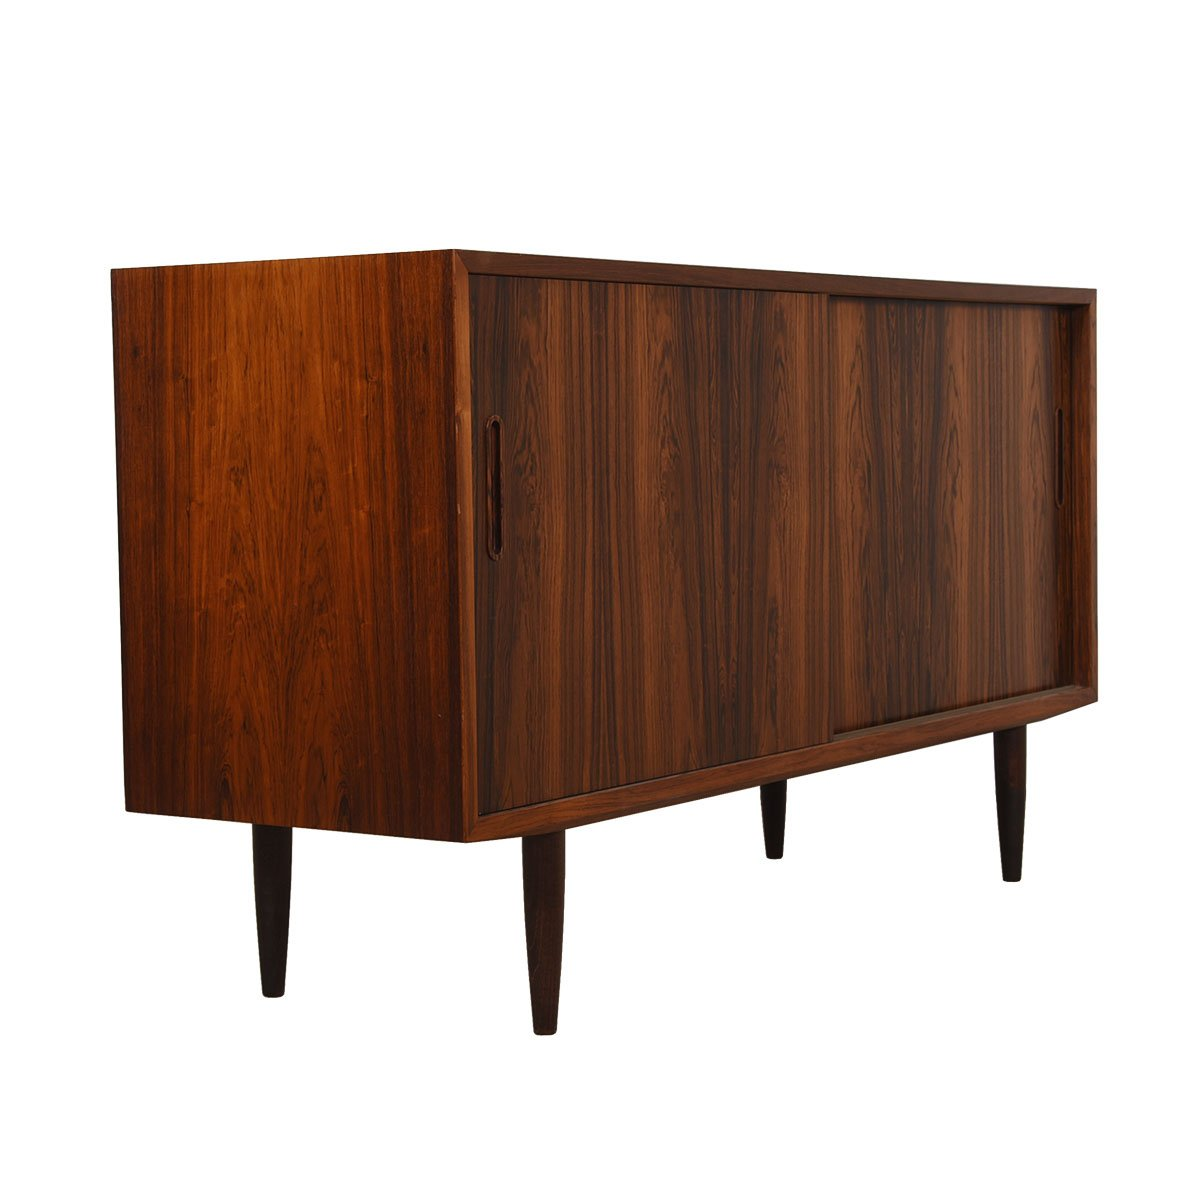 Compact Danish Rosewood Sideboard / Media / Storage Cabinet